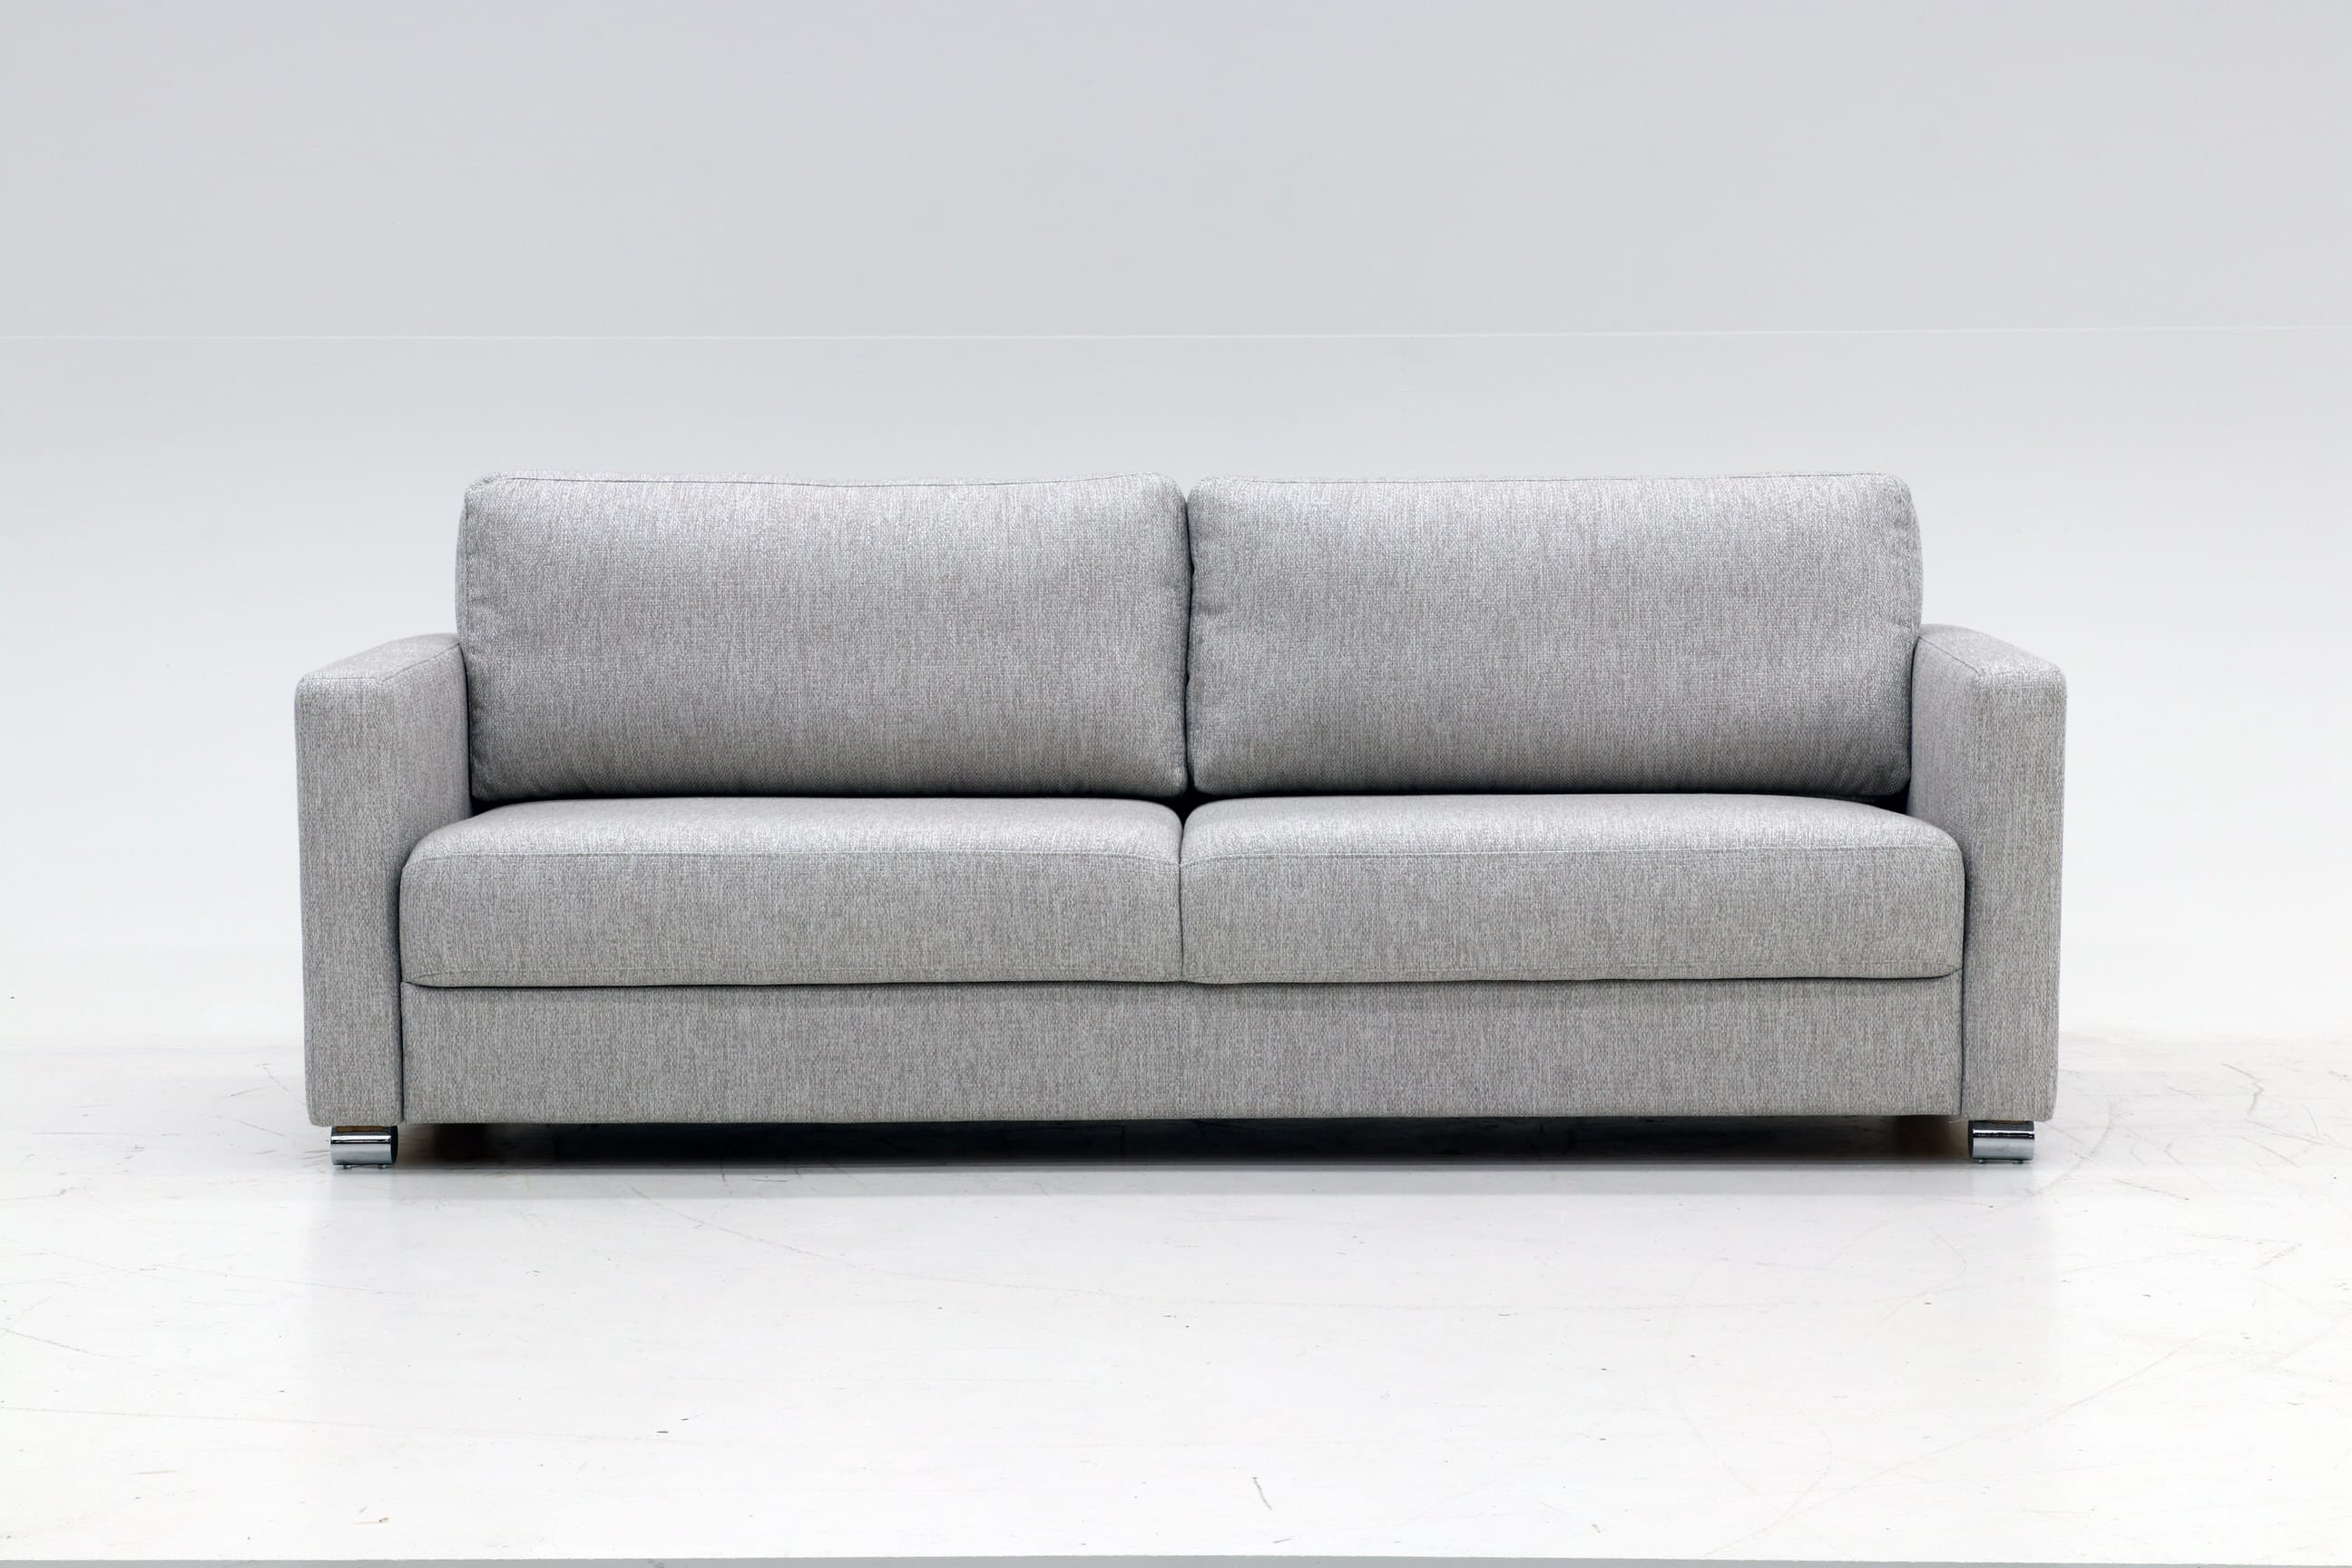 - Fantasy Sofa Sleeper (King Size) By Luonto Furniture